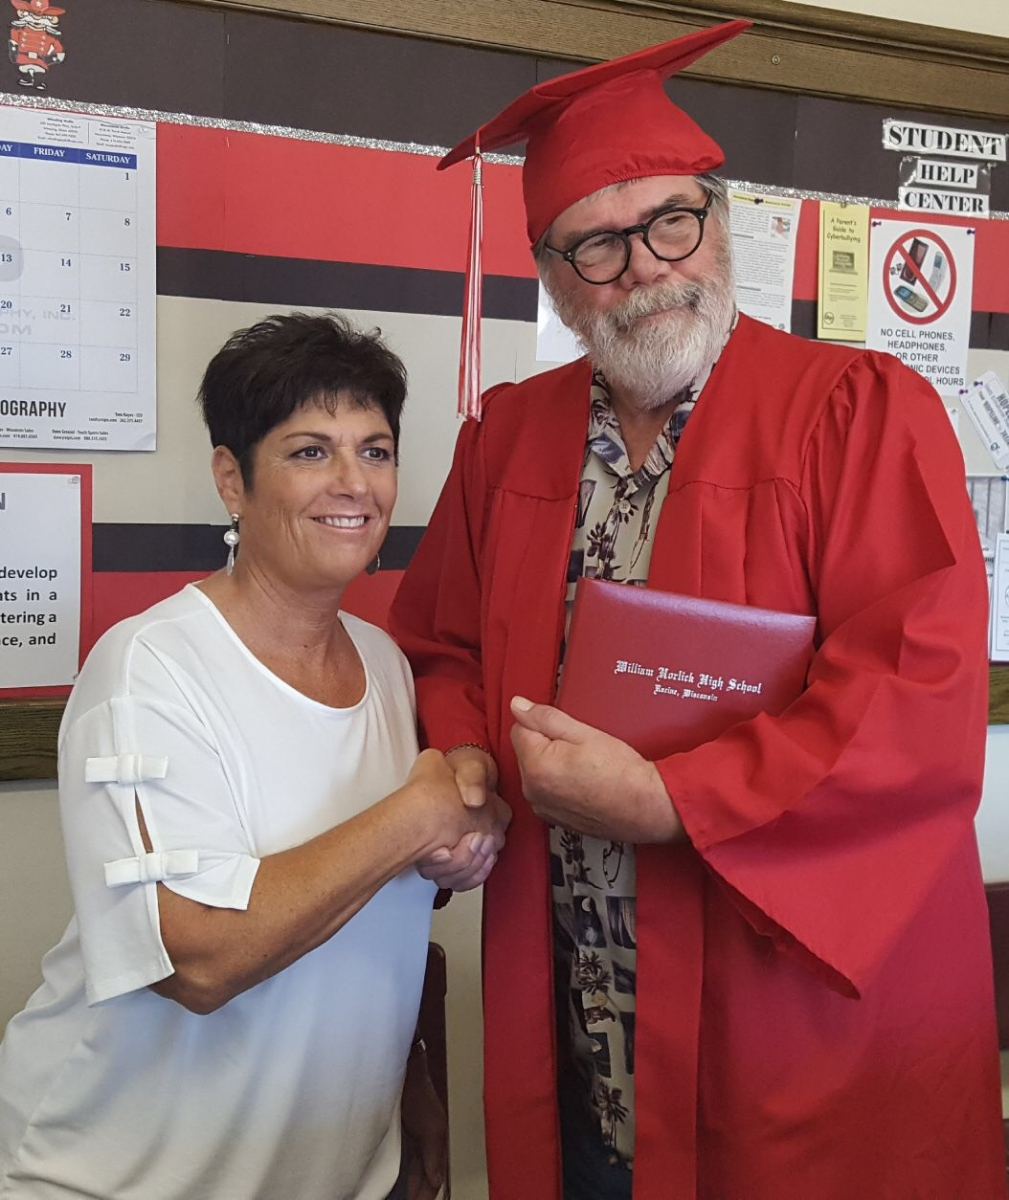 Male Veteran Graduate holding diploma shaking hands with teacher